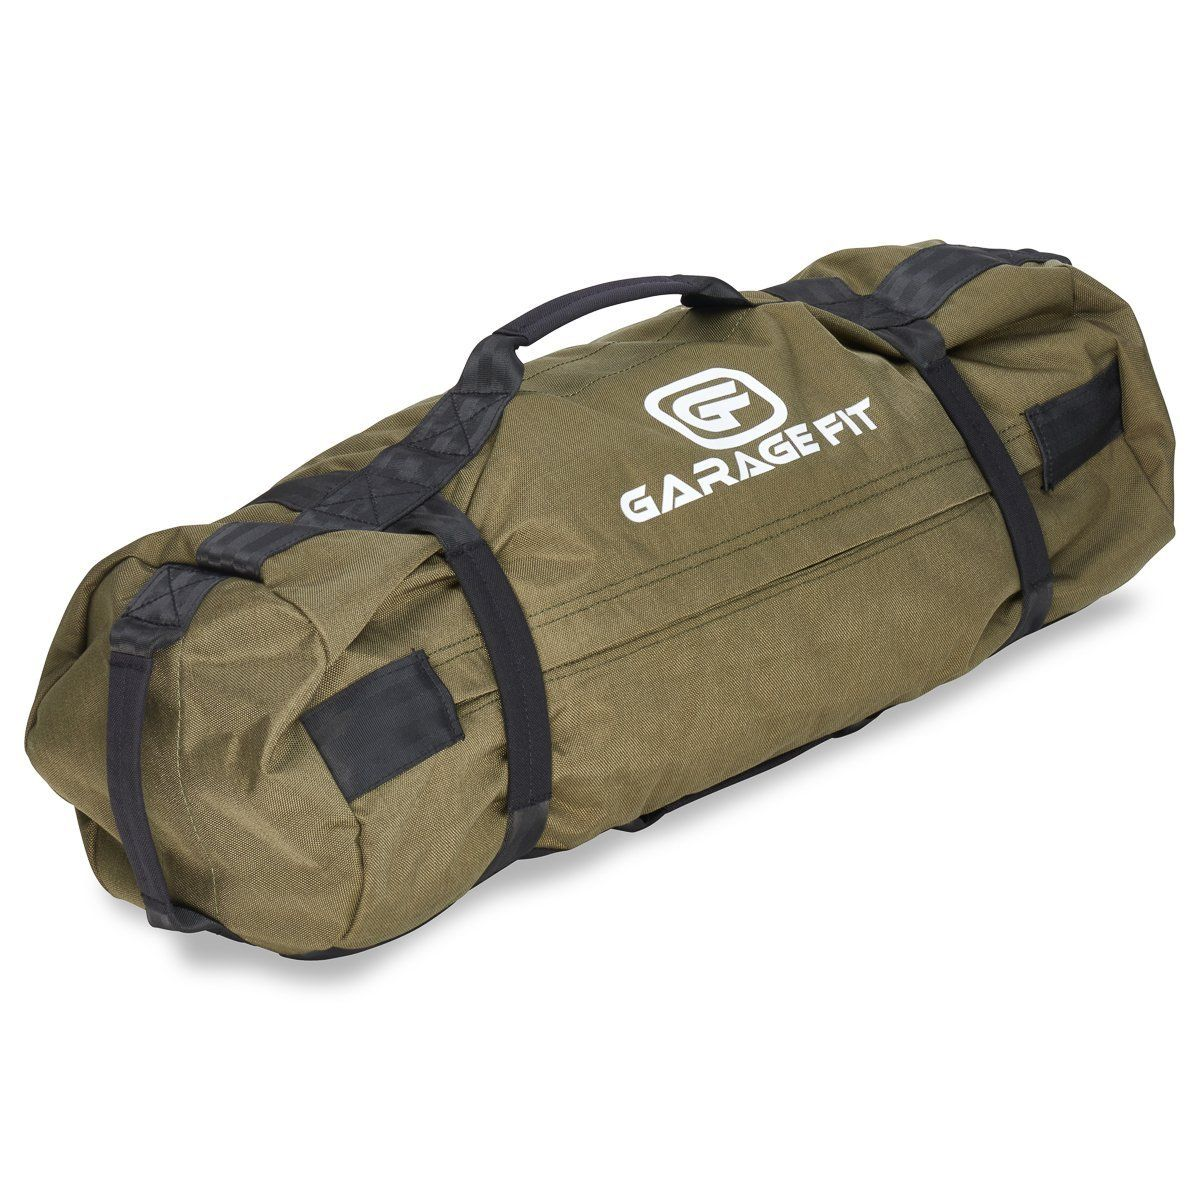 02d03a29f55a Amazon.com : Heavy Duty Workout Sandbags For Fitness, Exercise ...